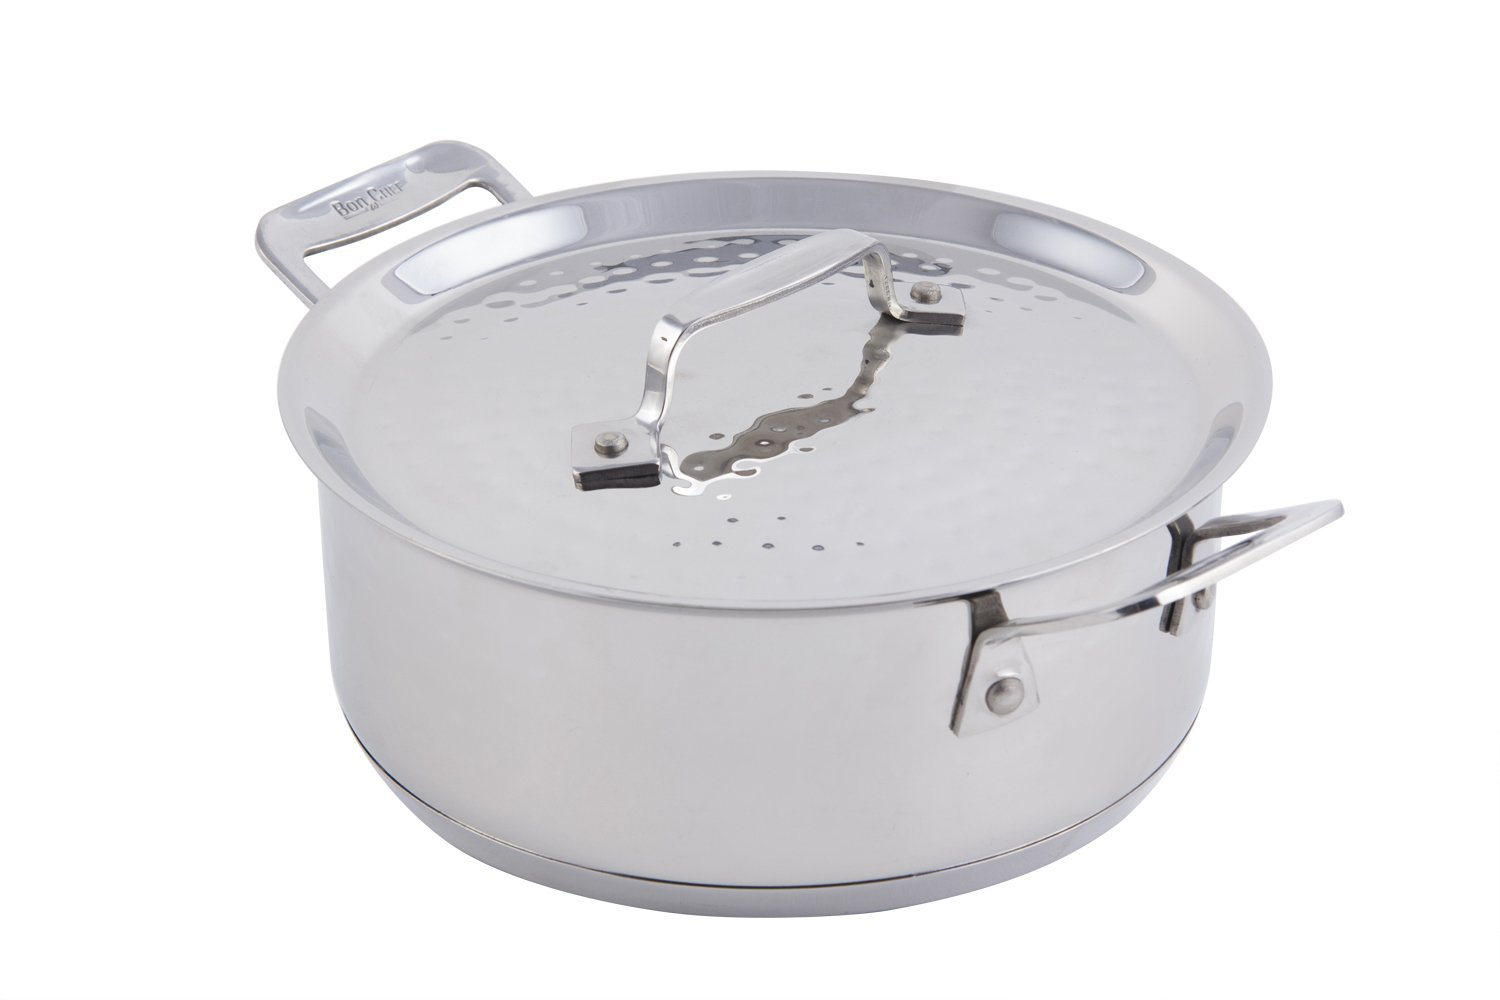 Bon Chef 60000HF Stainless Steel Induction Bottom Cucina Casserole with Lid, Hammered Finish, 3 quart Capacity, 11.4'' Length x 8.9'' Width x 4.7'' Height